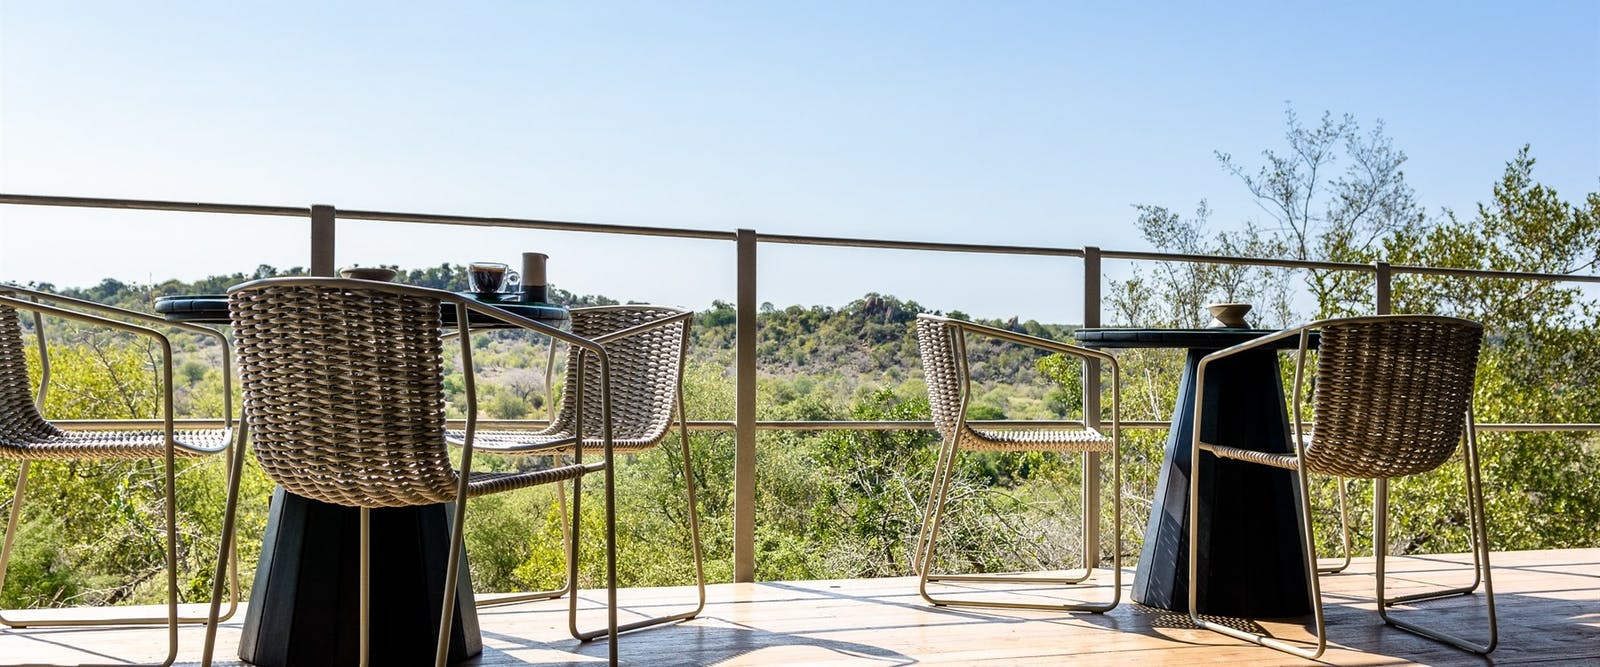 Balcony View At Singita Pamushana Lodge